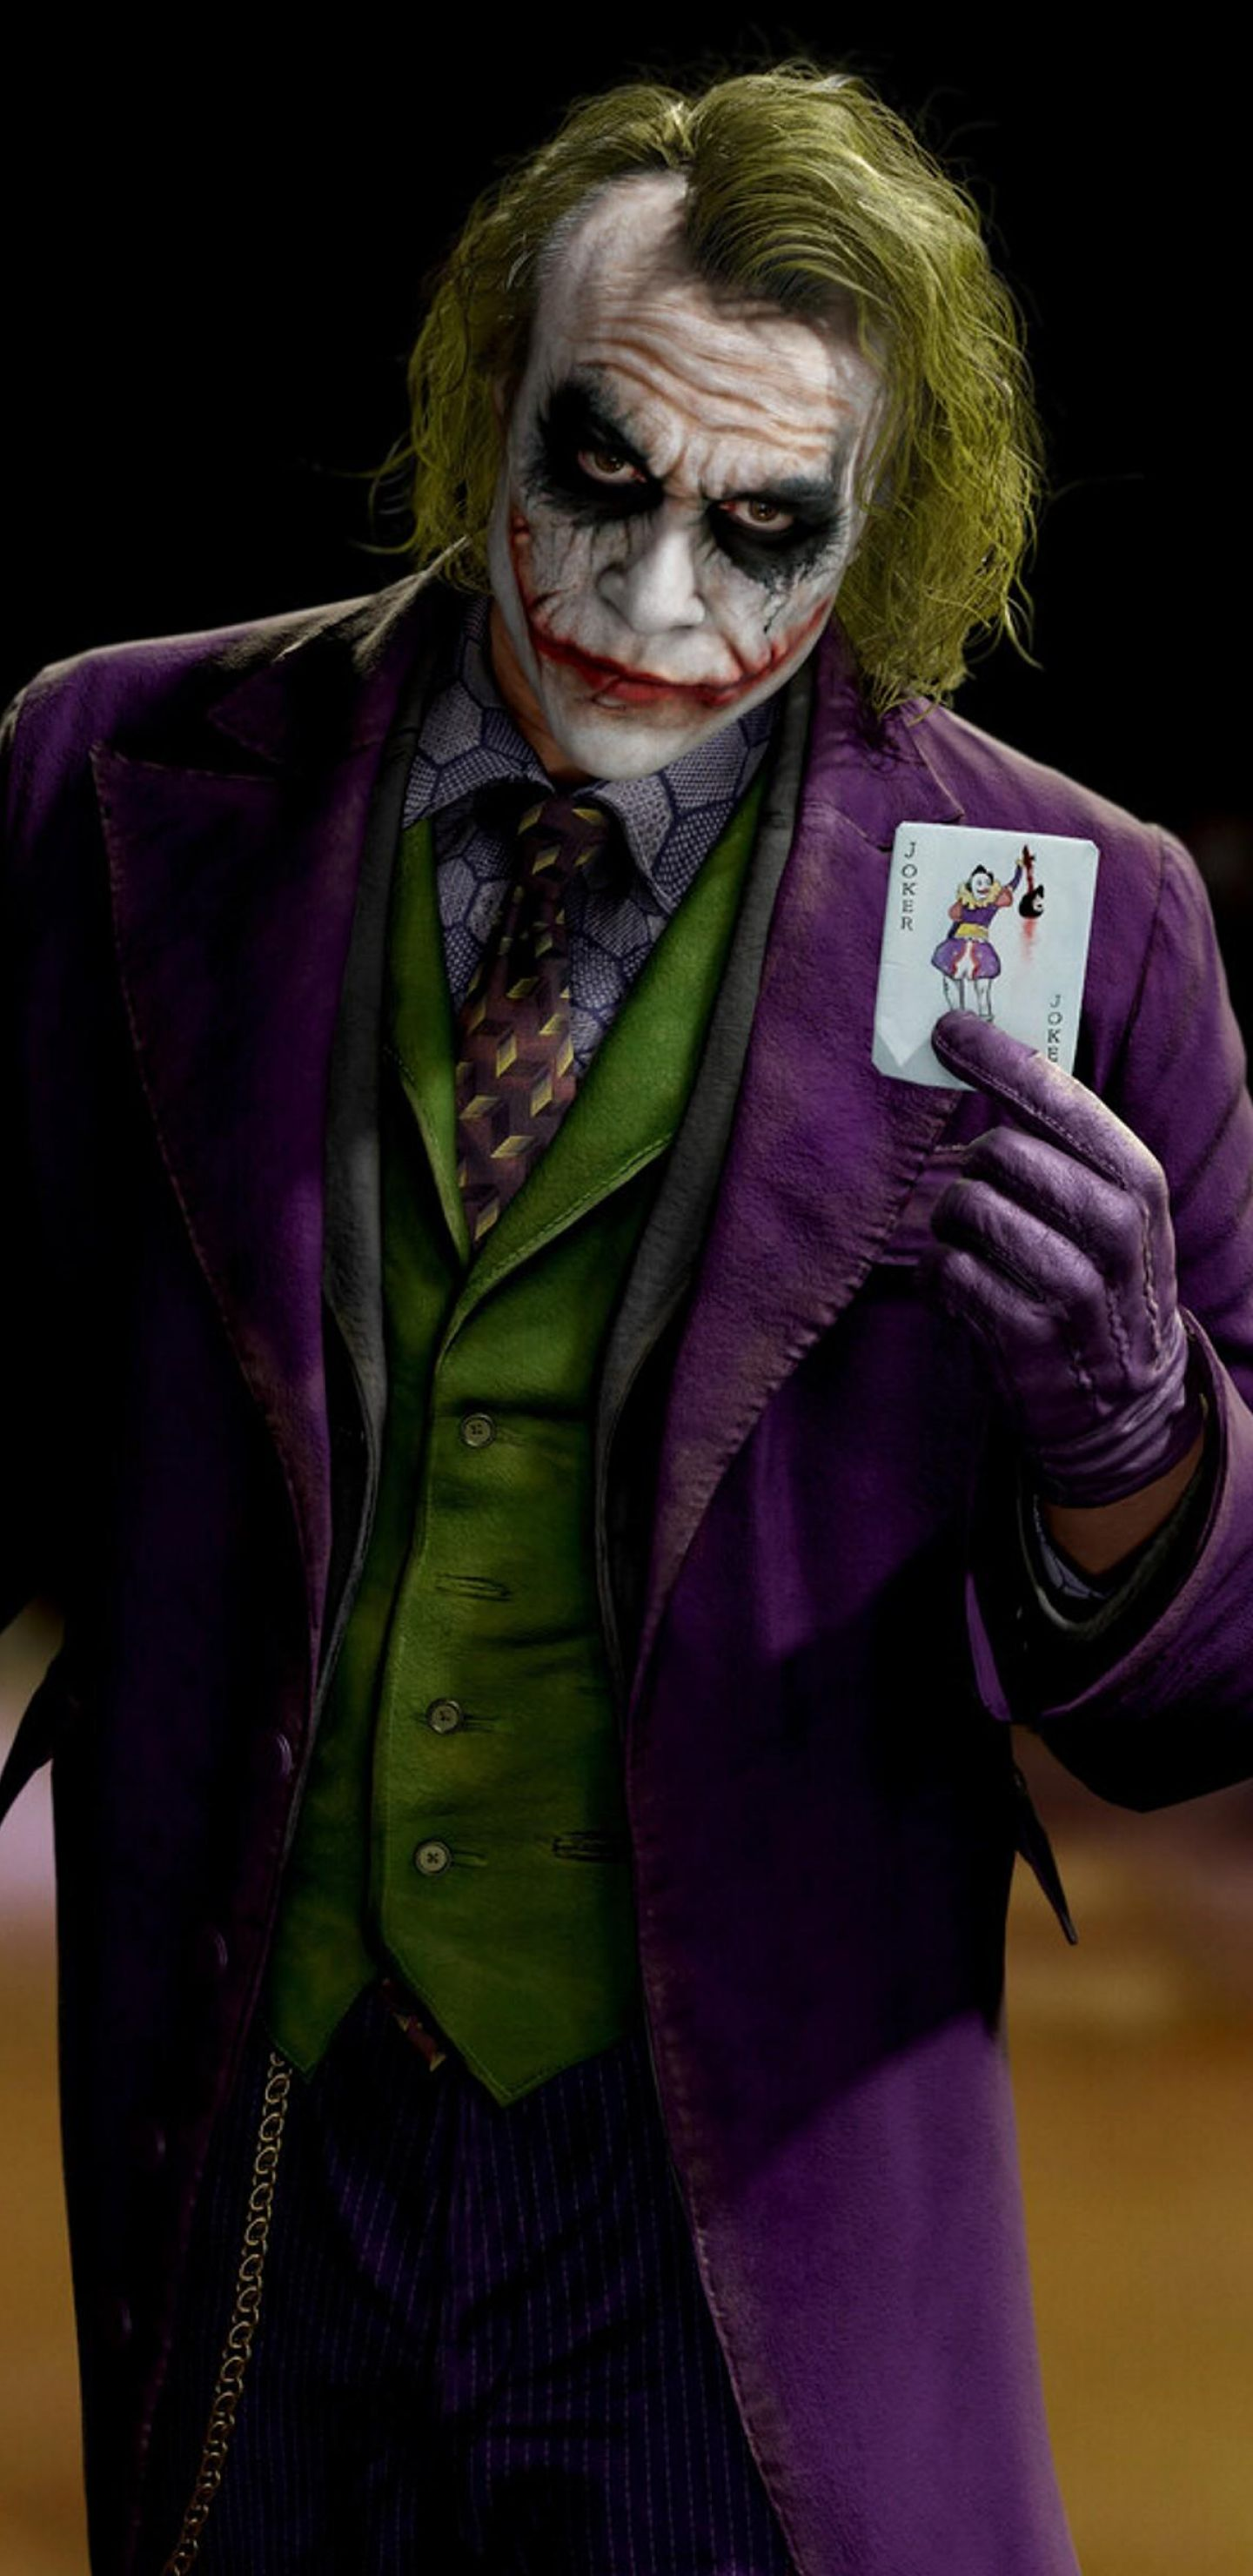 Joker Heath Ledger 3d Desktop Hd Wallpaper